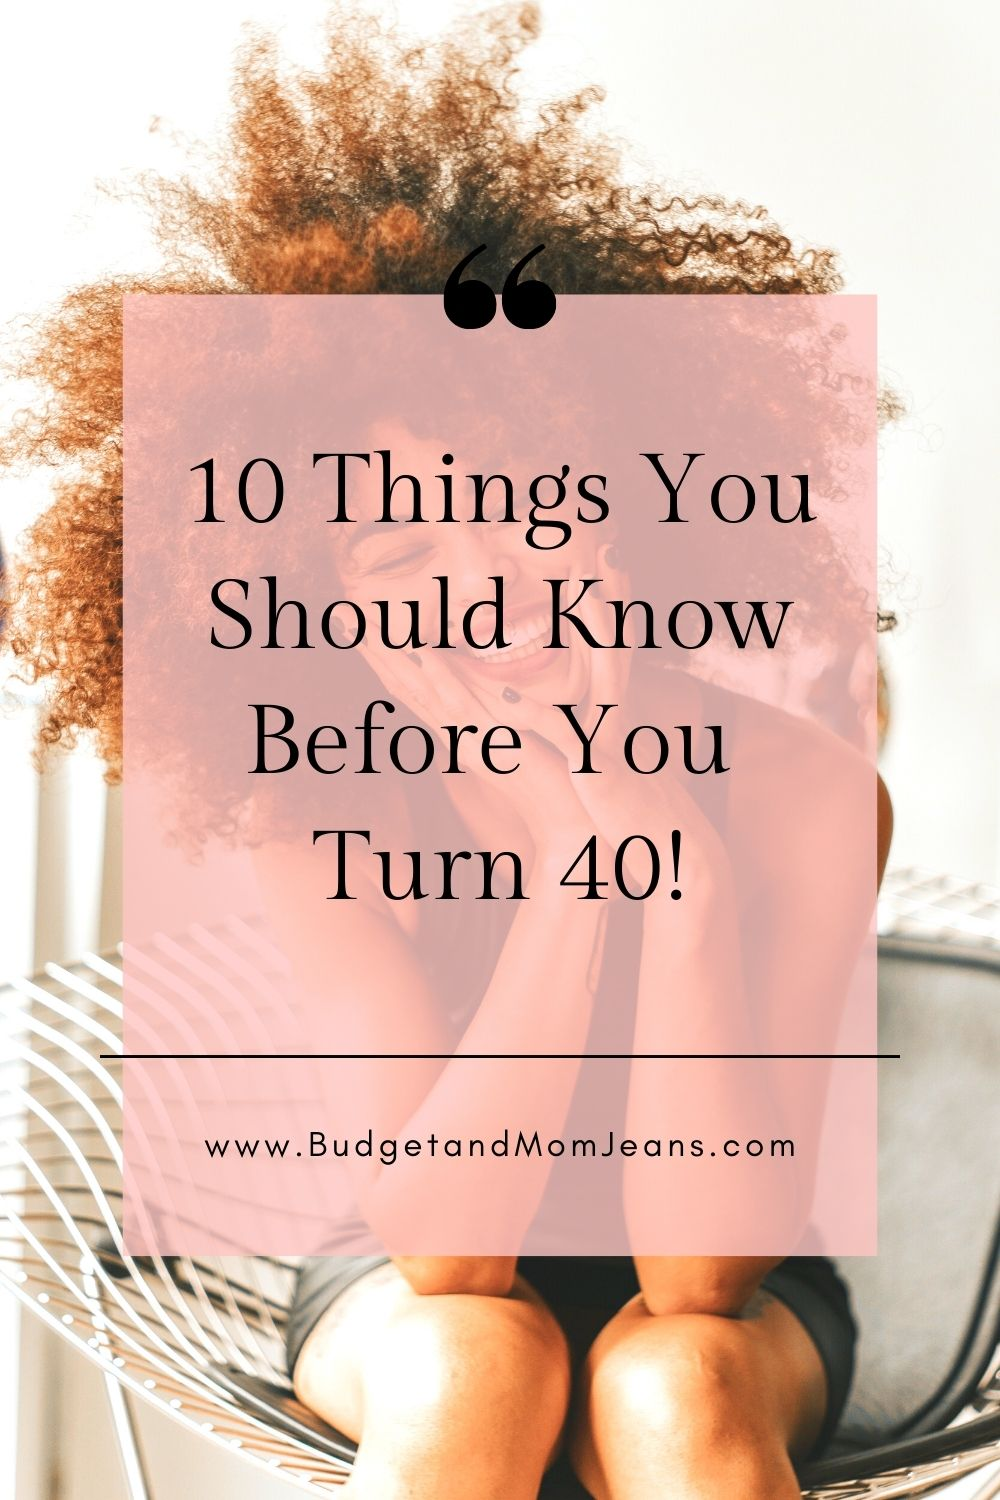 10 Things You Should Know Before You Turn 40